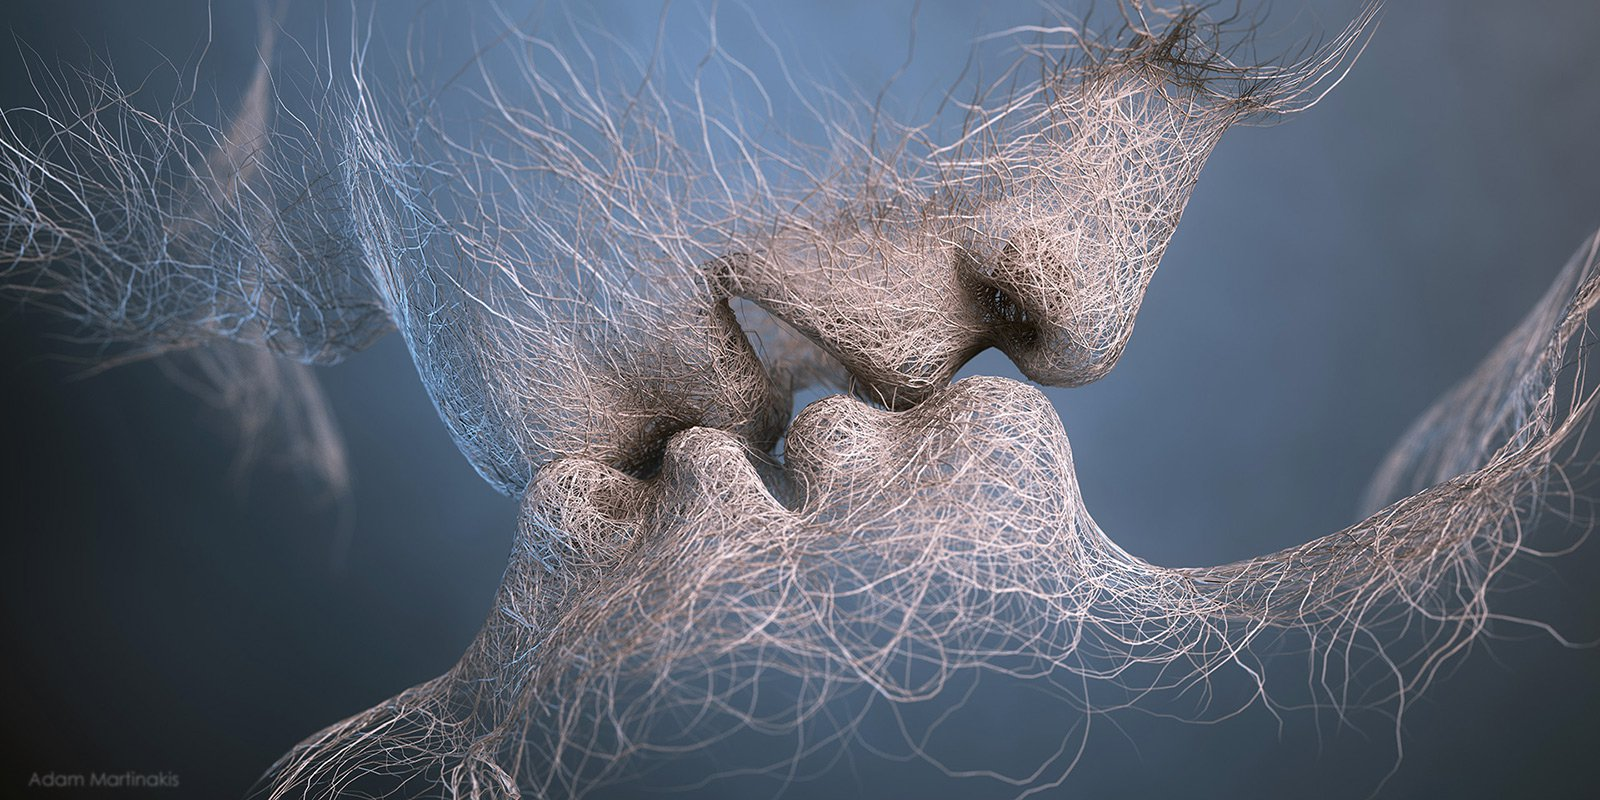 Last kiss - Adam Martinakis